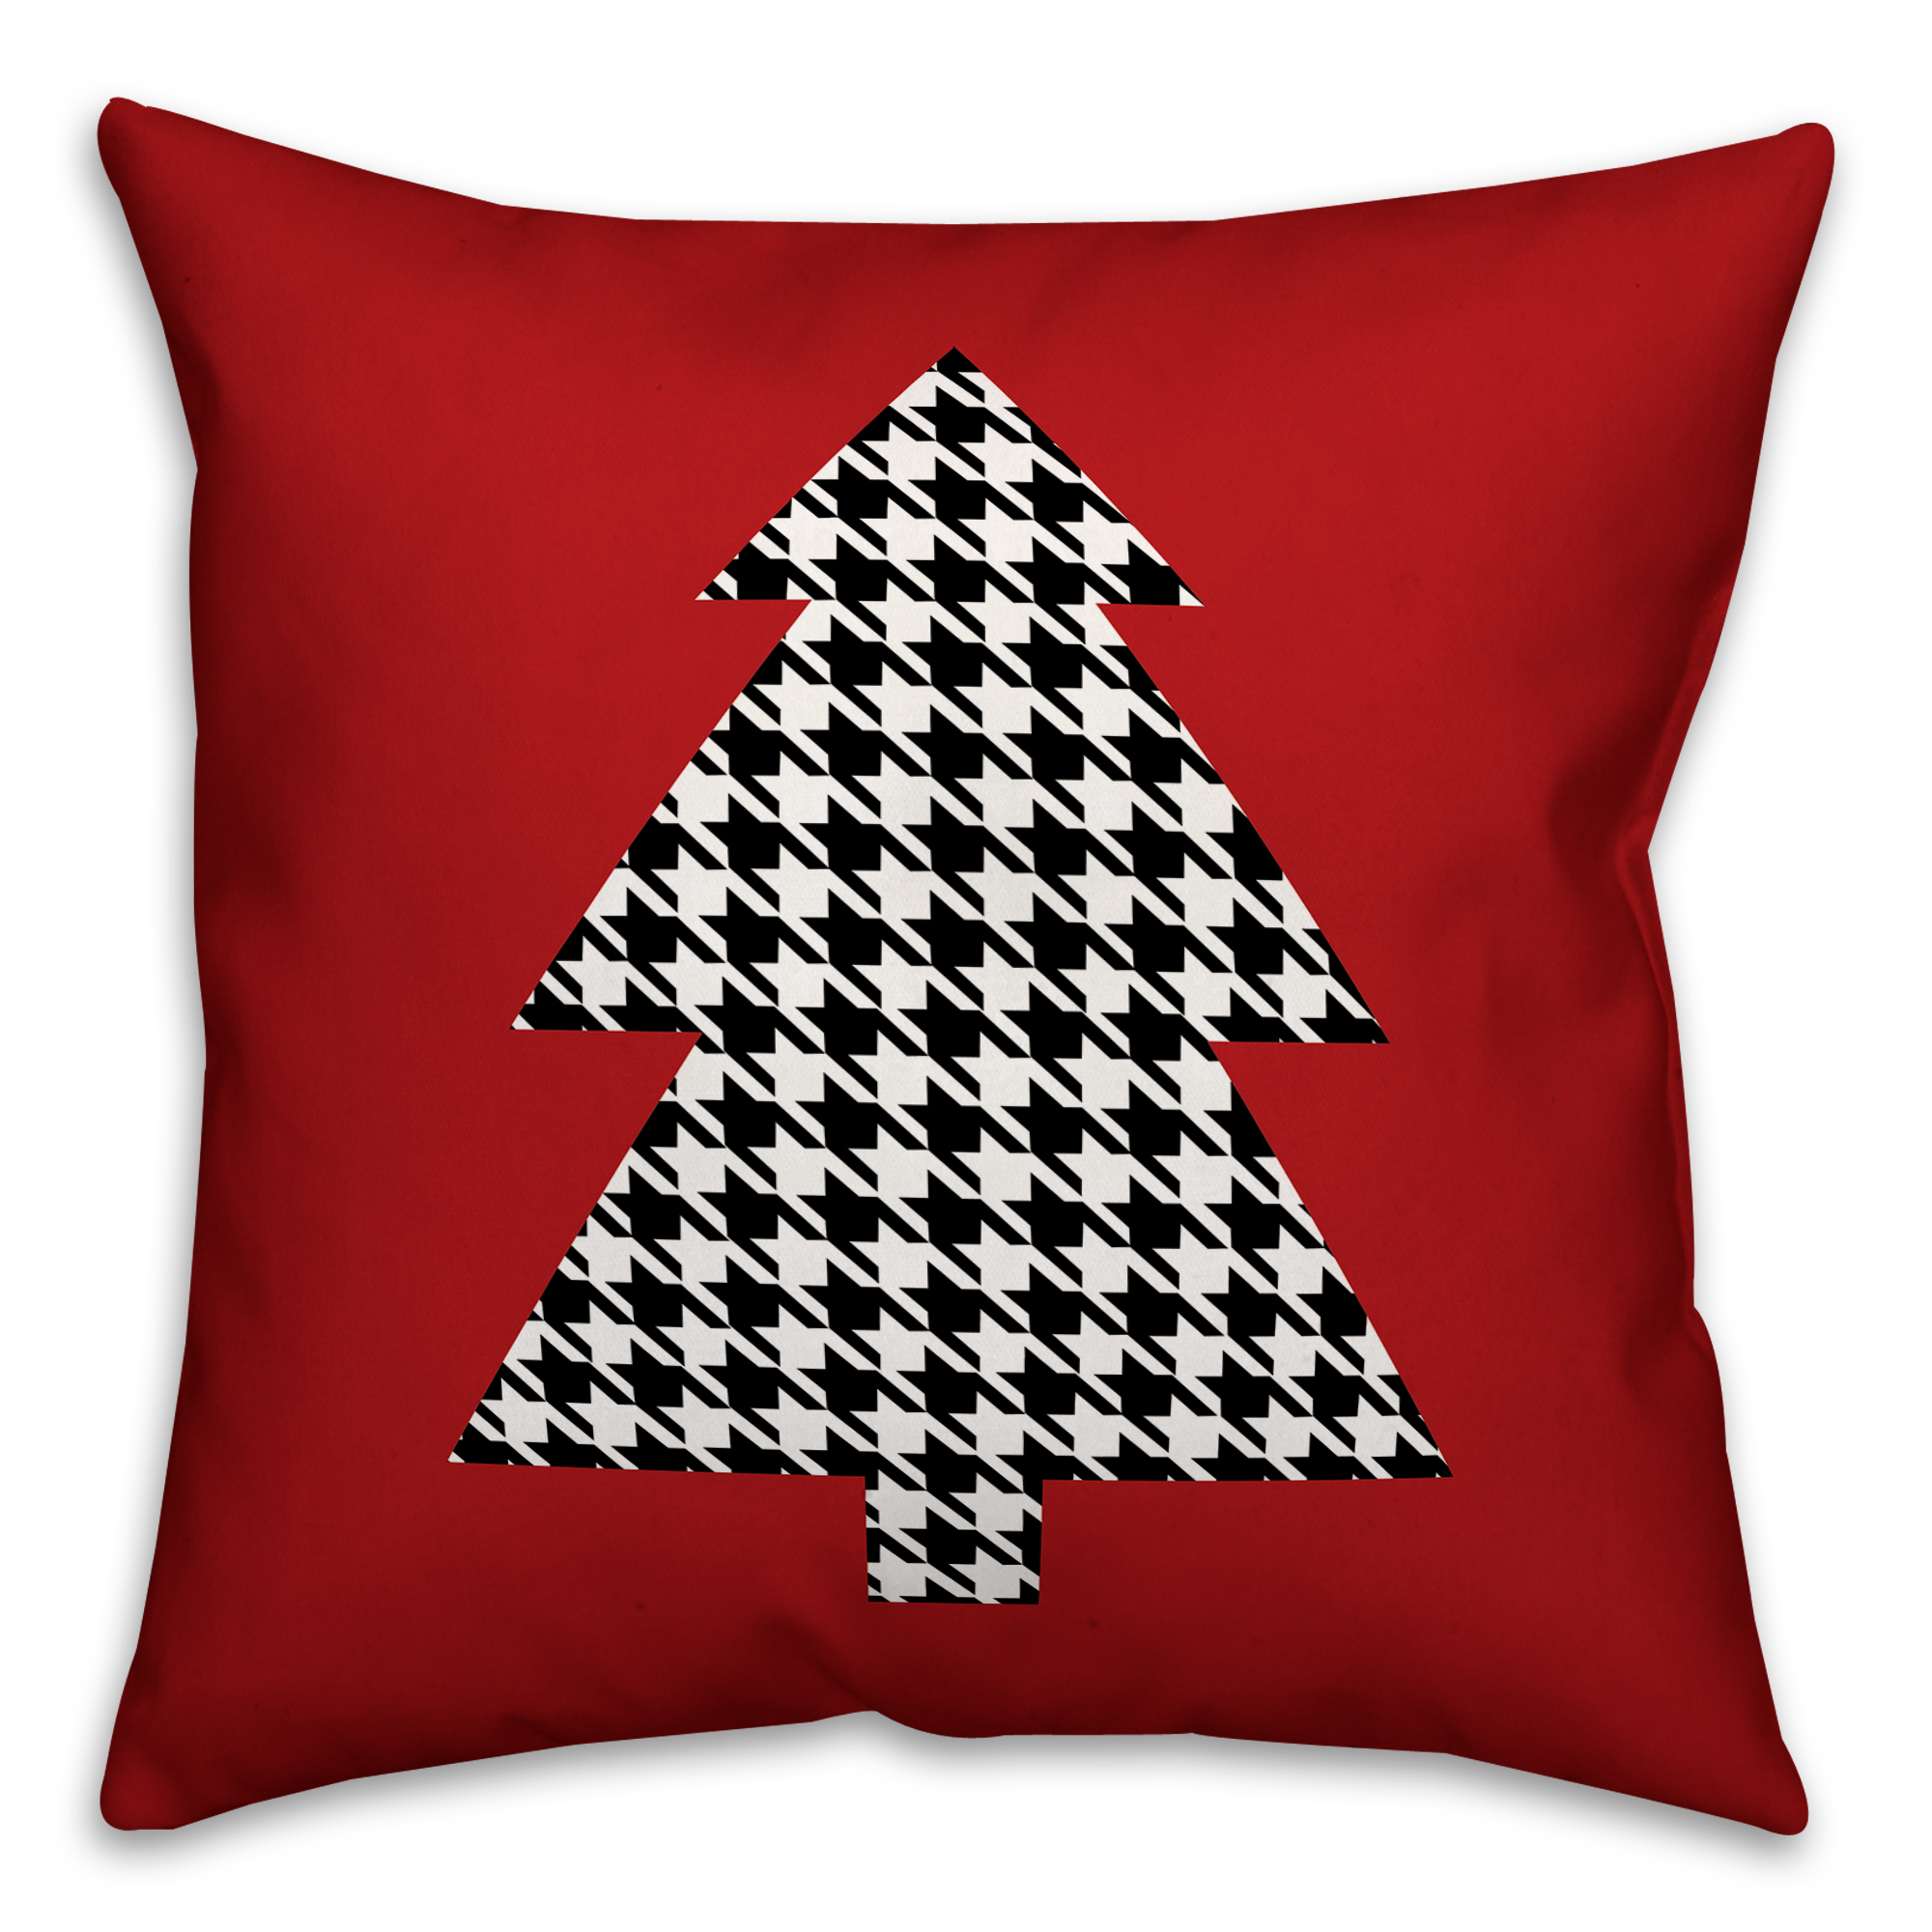 Houndstooth Christmas Tree 20x20 Spun Poly Pillow